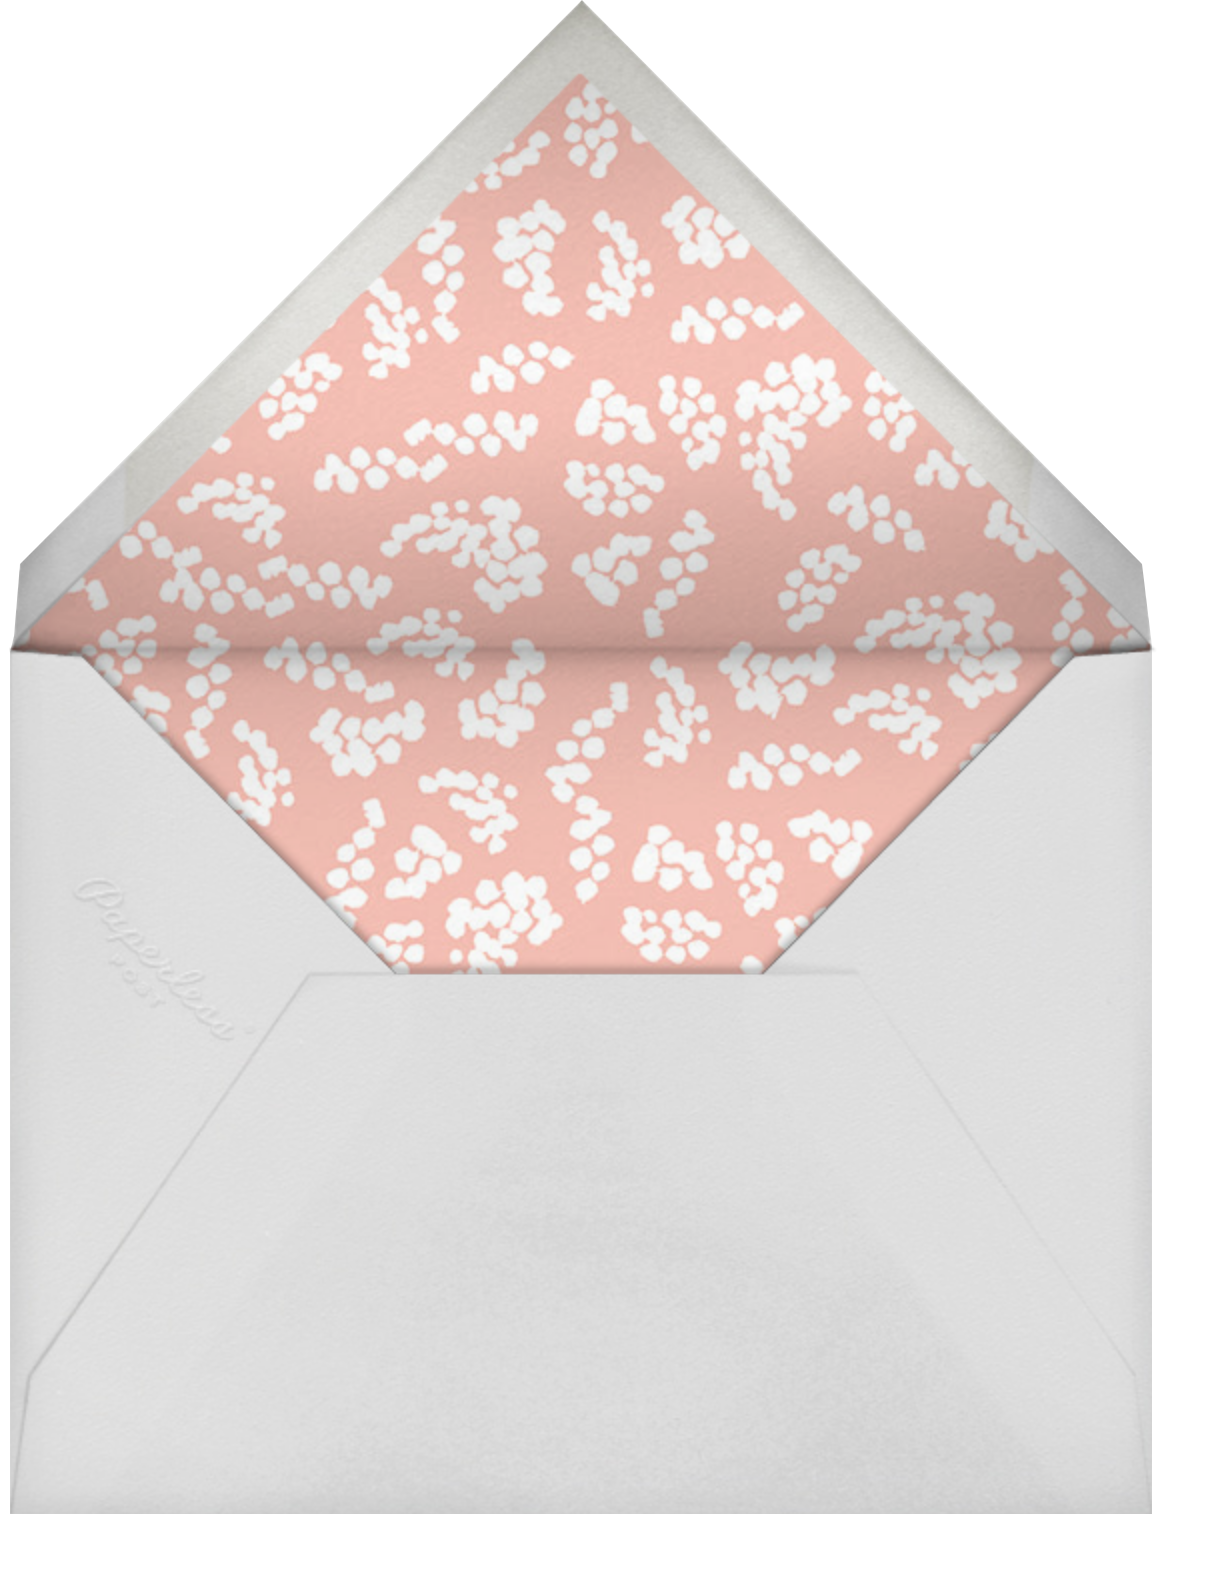 Just Married Getaway Thank You - Rifle Paper Co. - Envelope